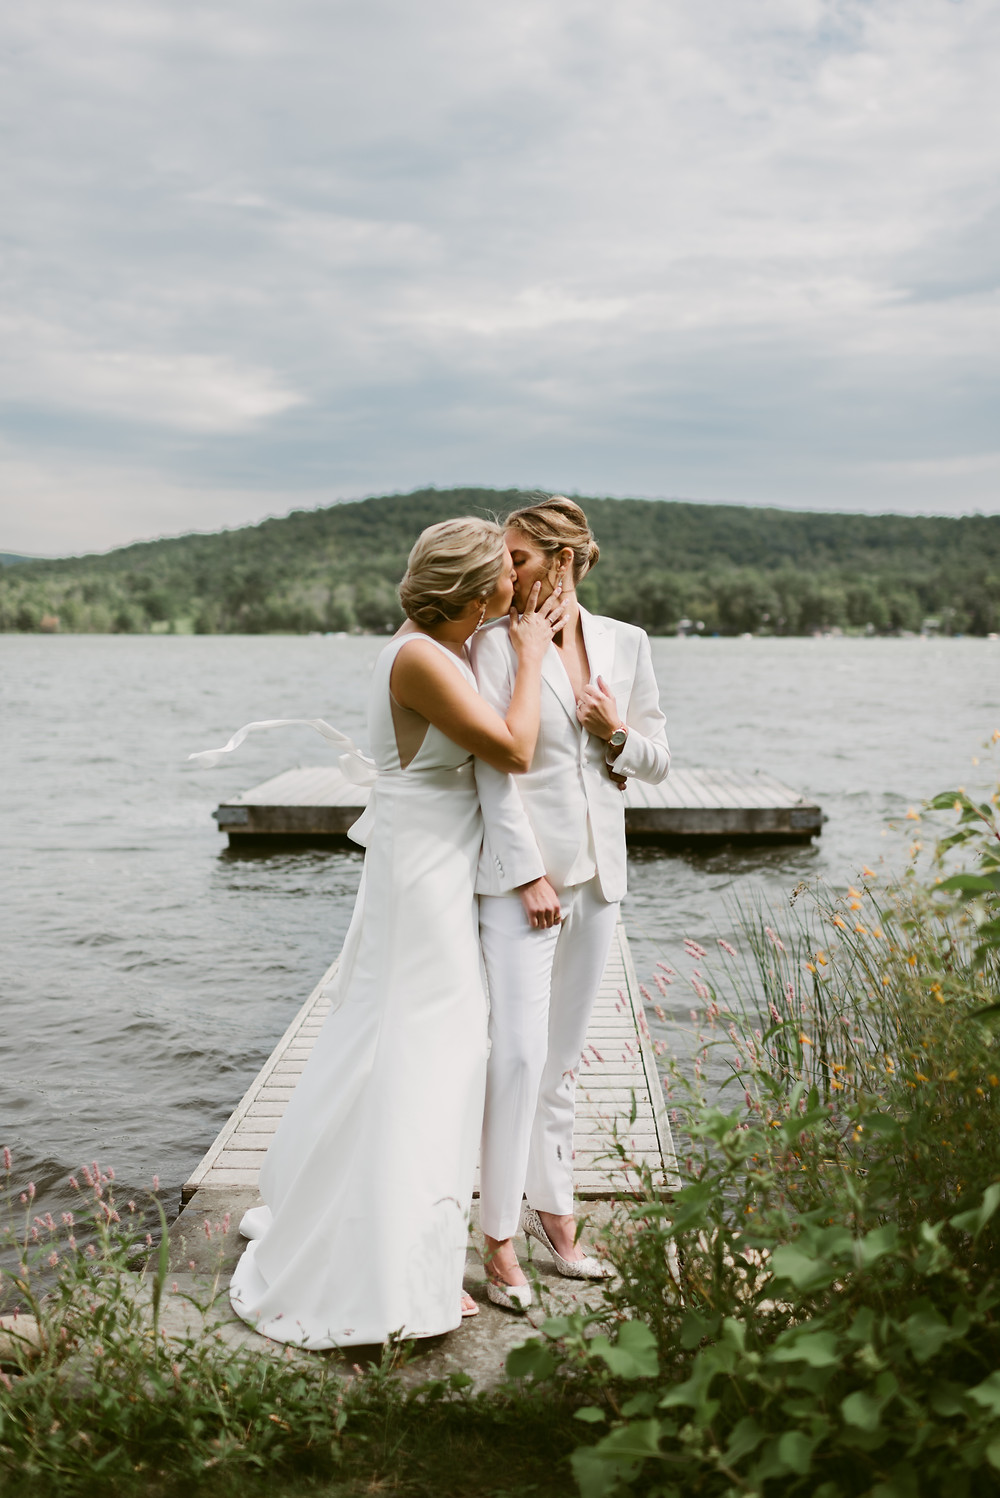 Lesbian summer wedding in Ithaca, NY | Mountainaire Gatherings